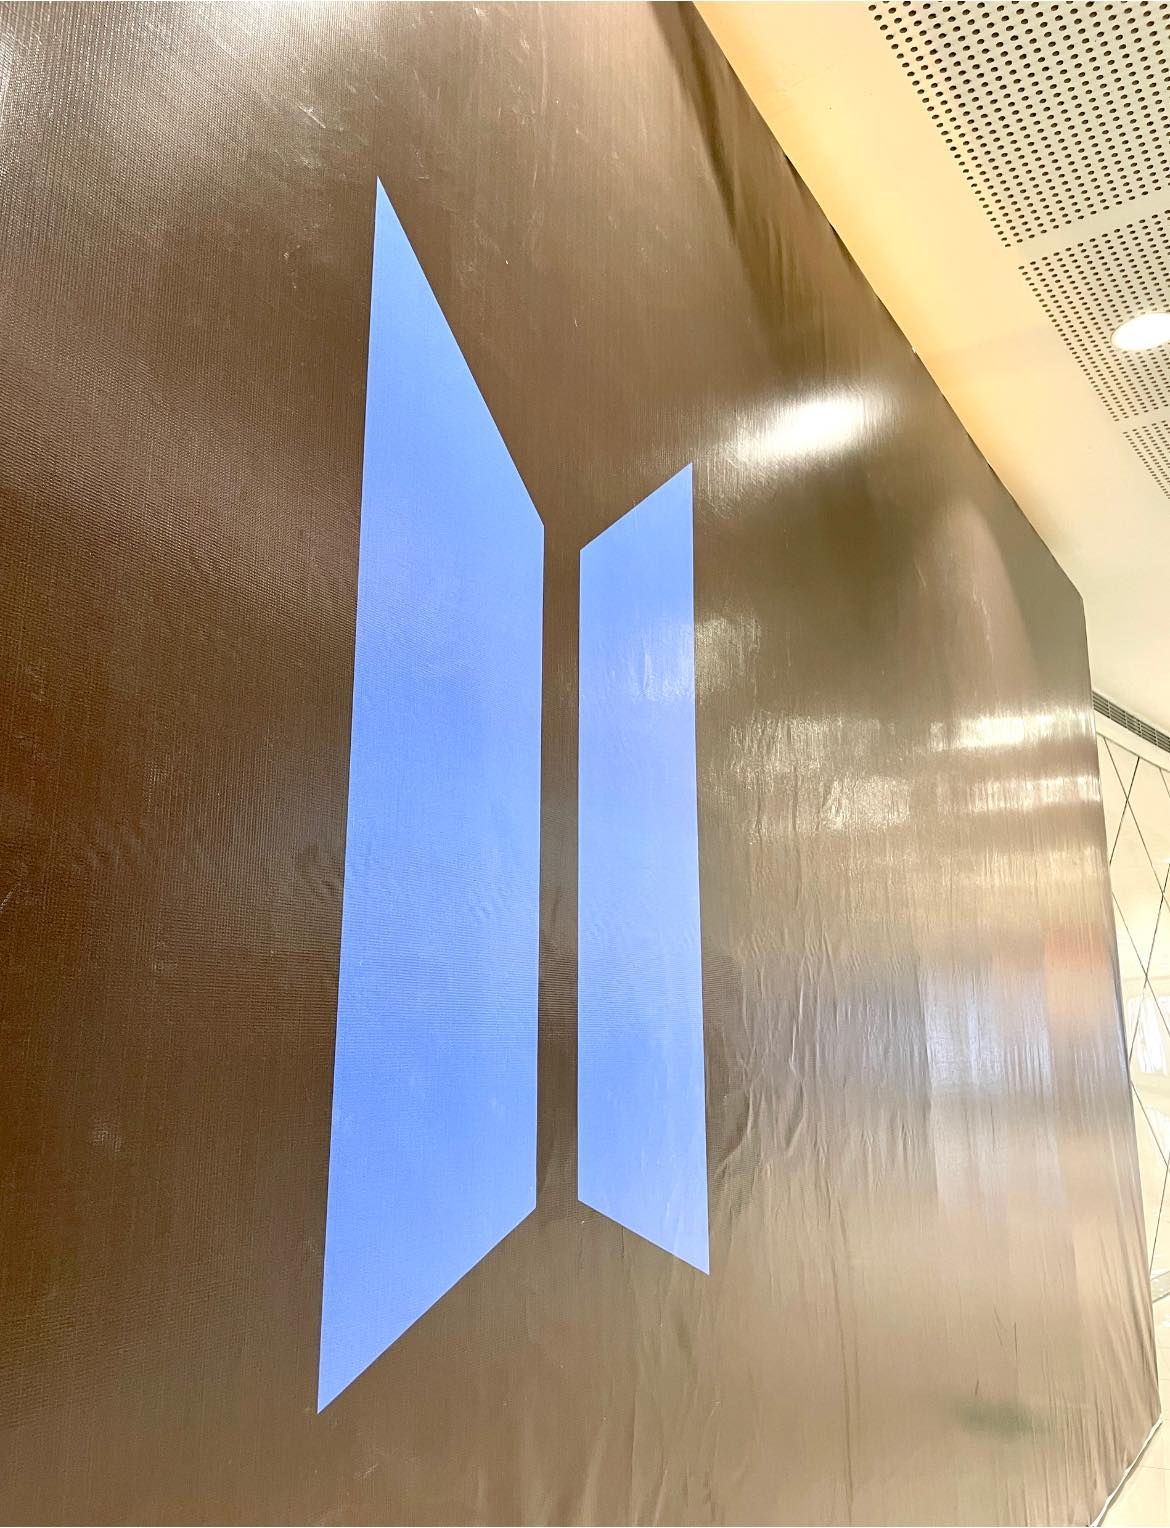 Where is the BTS Pop-Up Store in the Philippines located?